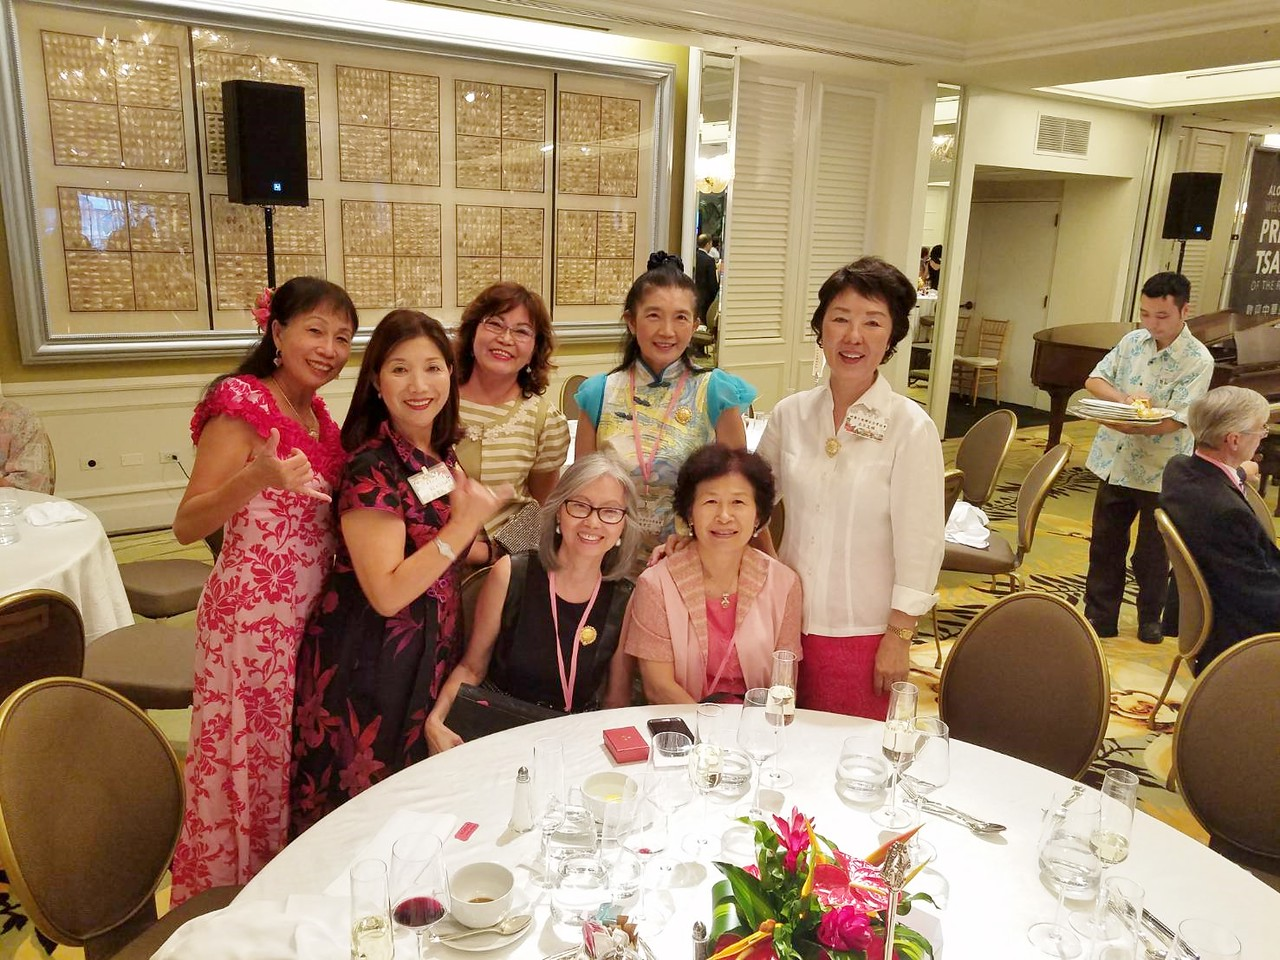 I think these are pics from Bob' camera: SJ - Li May - Lisa - Elizabeth - Jennie, Susan & Mrs. Liao